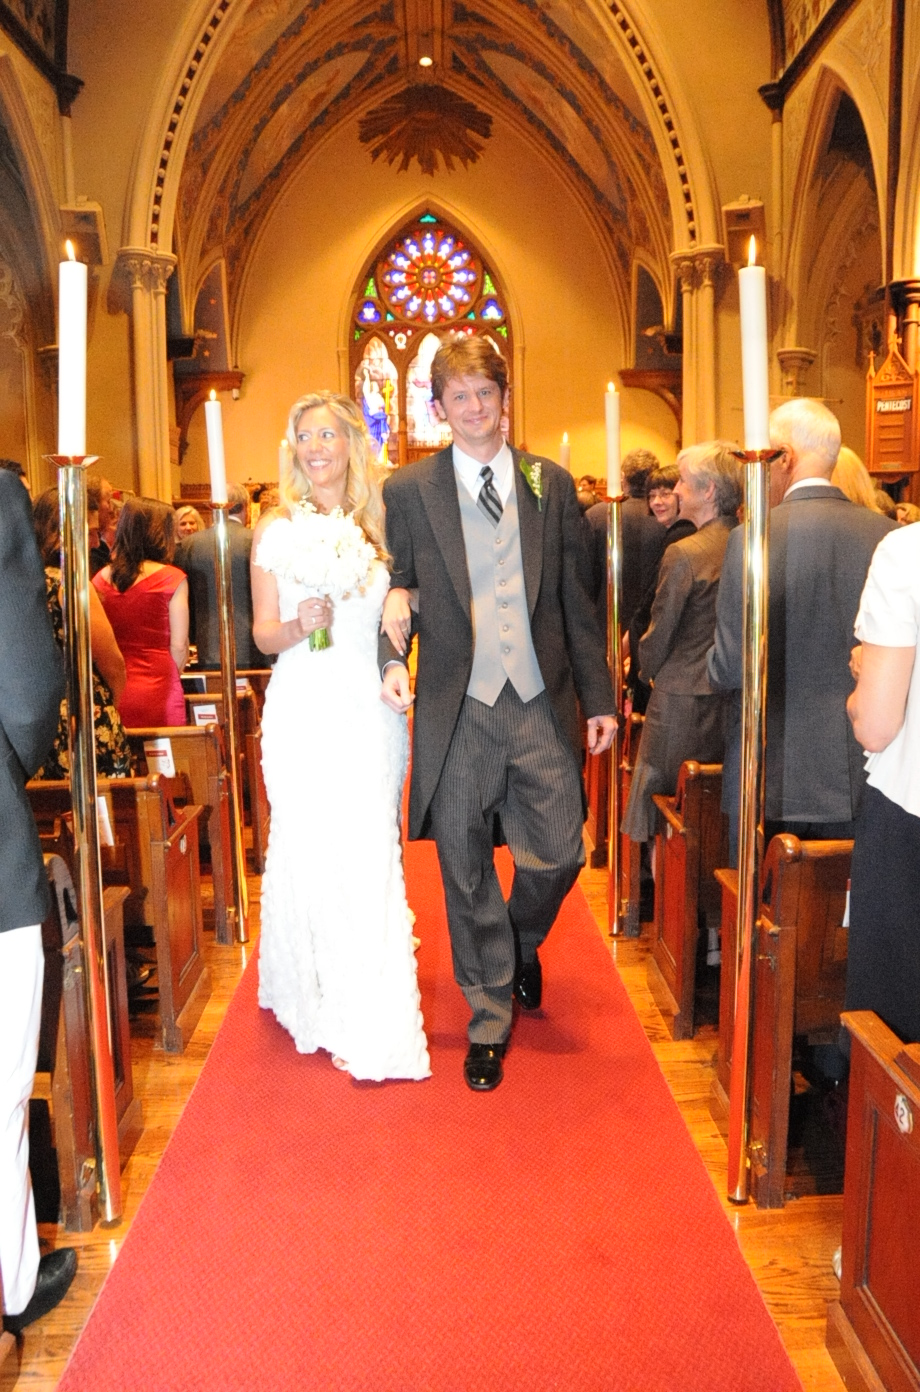 Wedding by by Sheridan Photography Westport CT